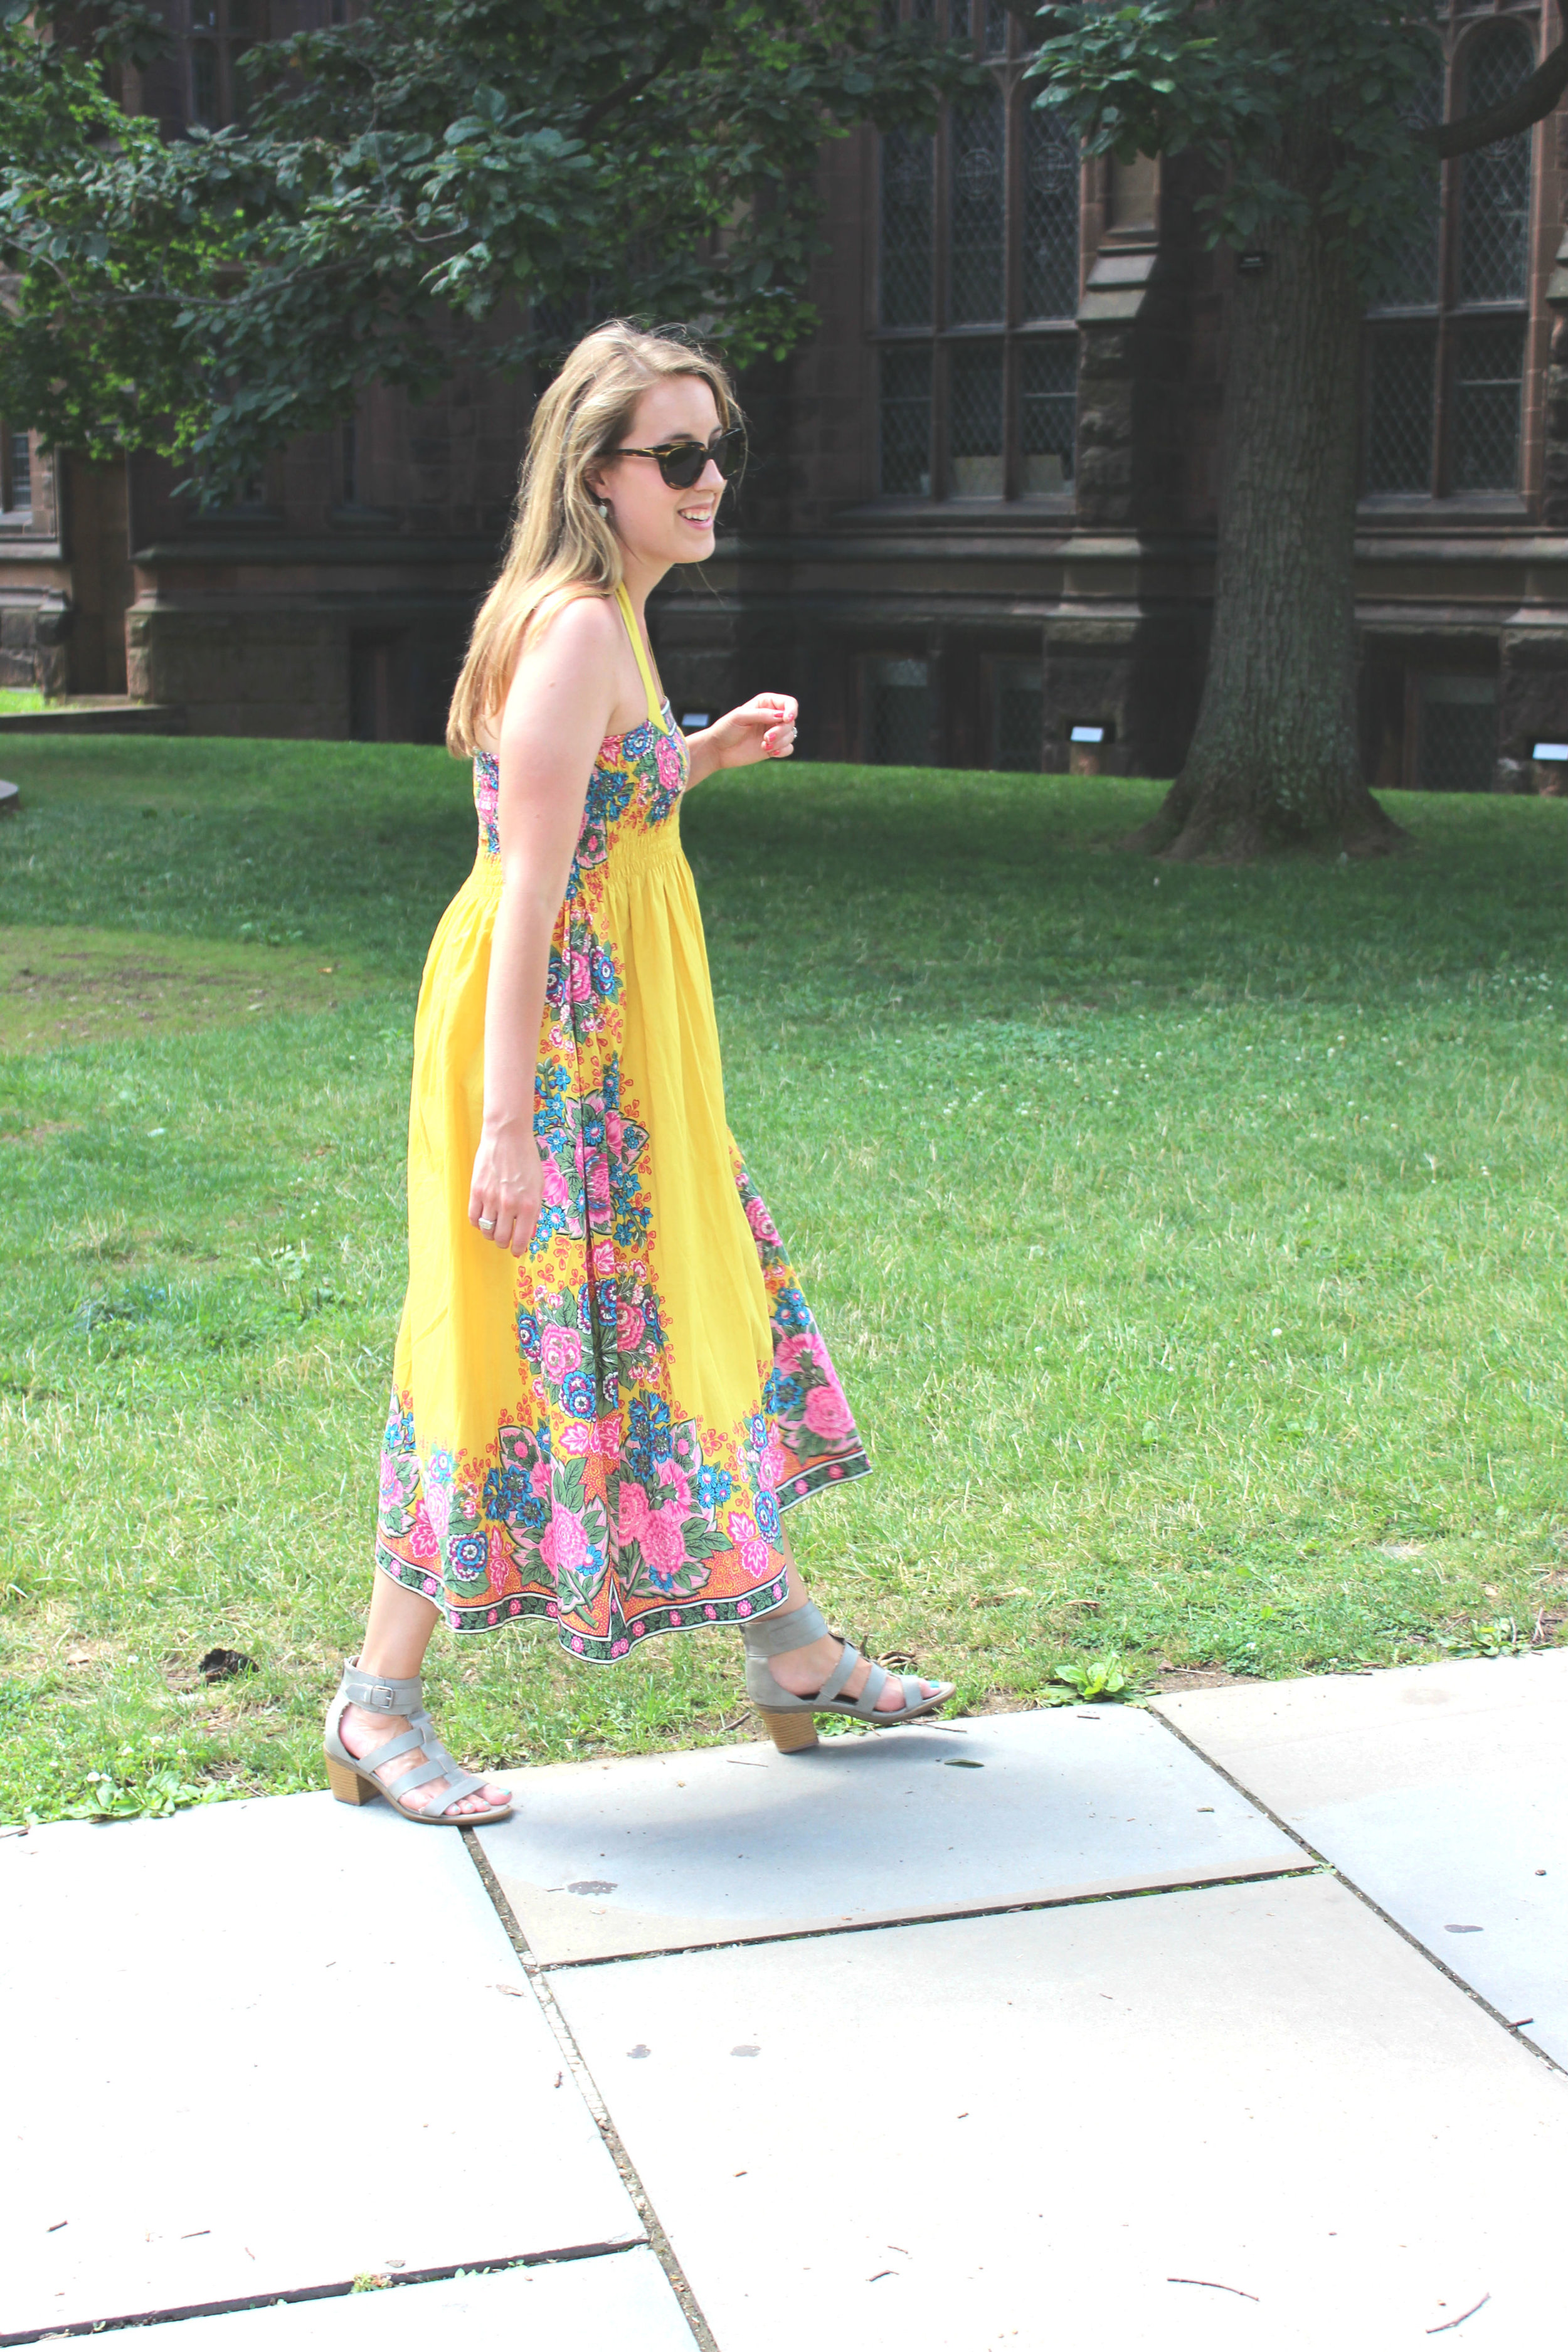 Wearing: Vintage, Summer Style